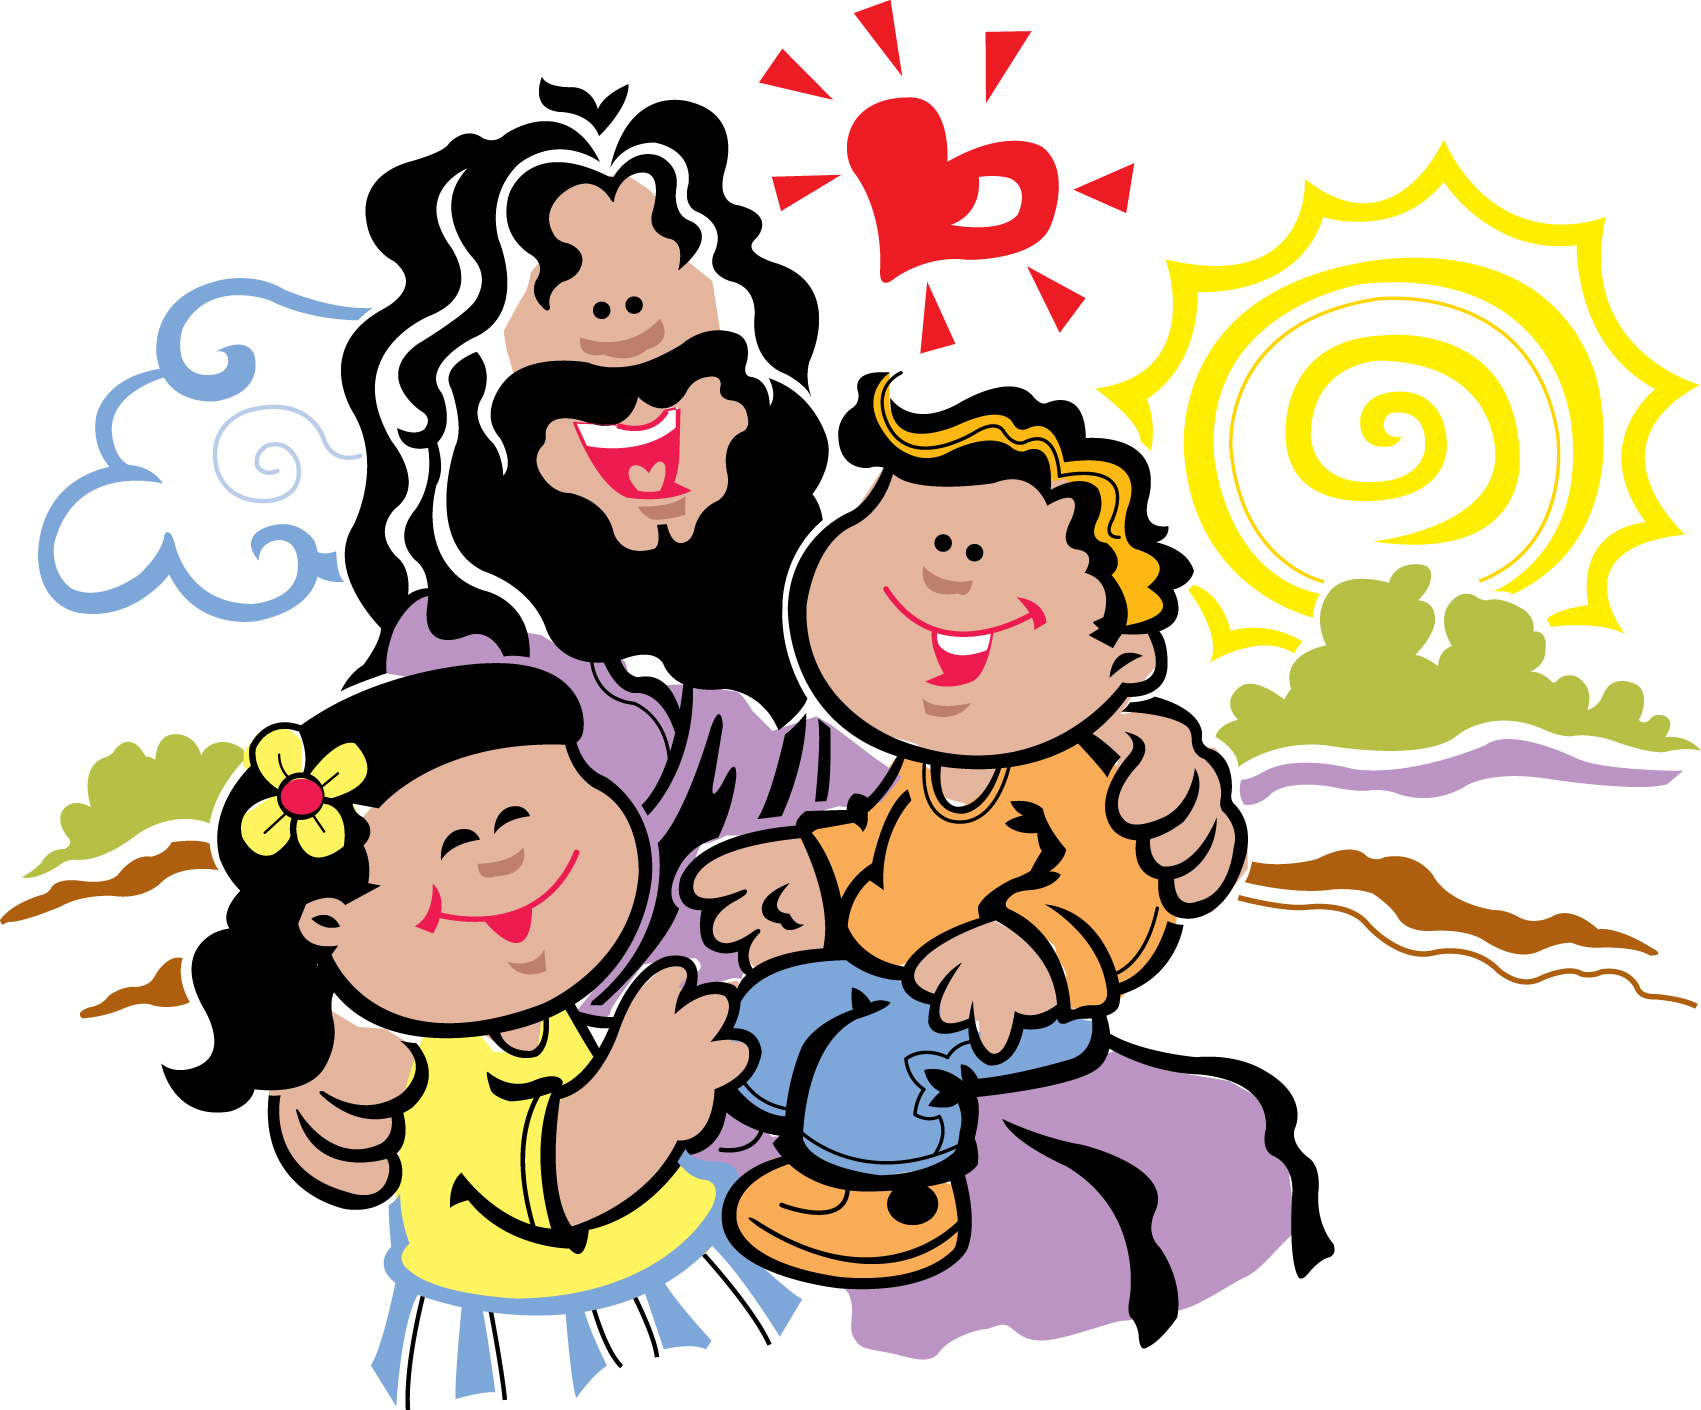 Kids with jesus clipart vector download Kids with jesus clipart - ClipartFest vector download